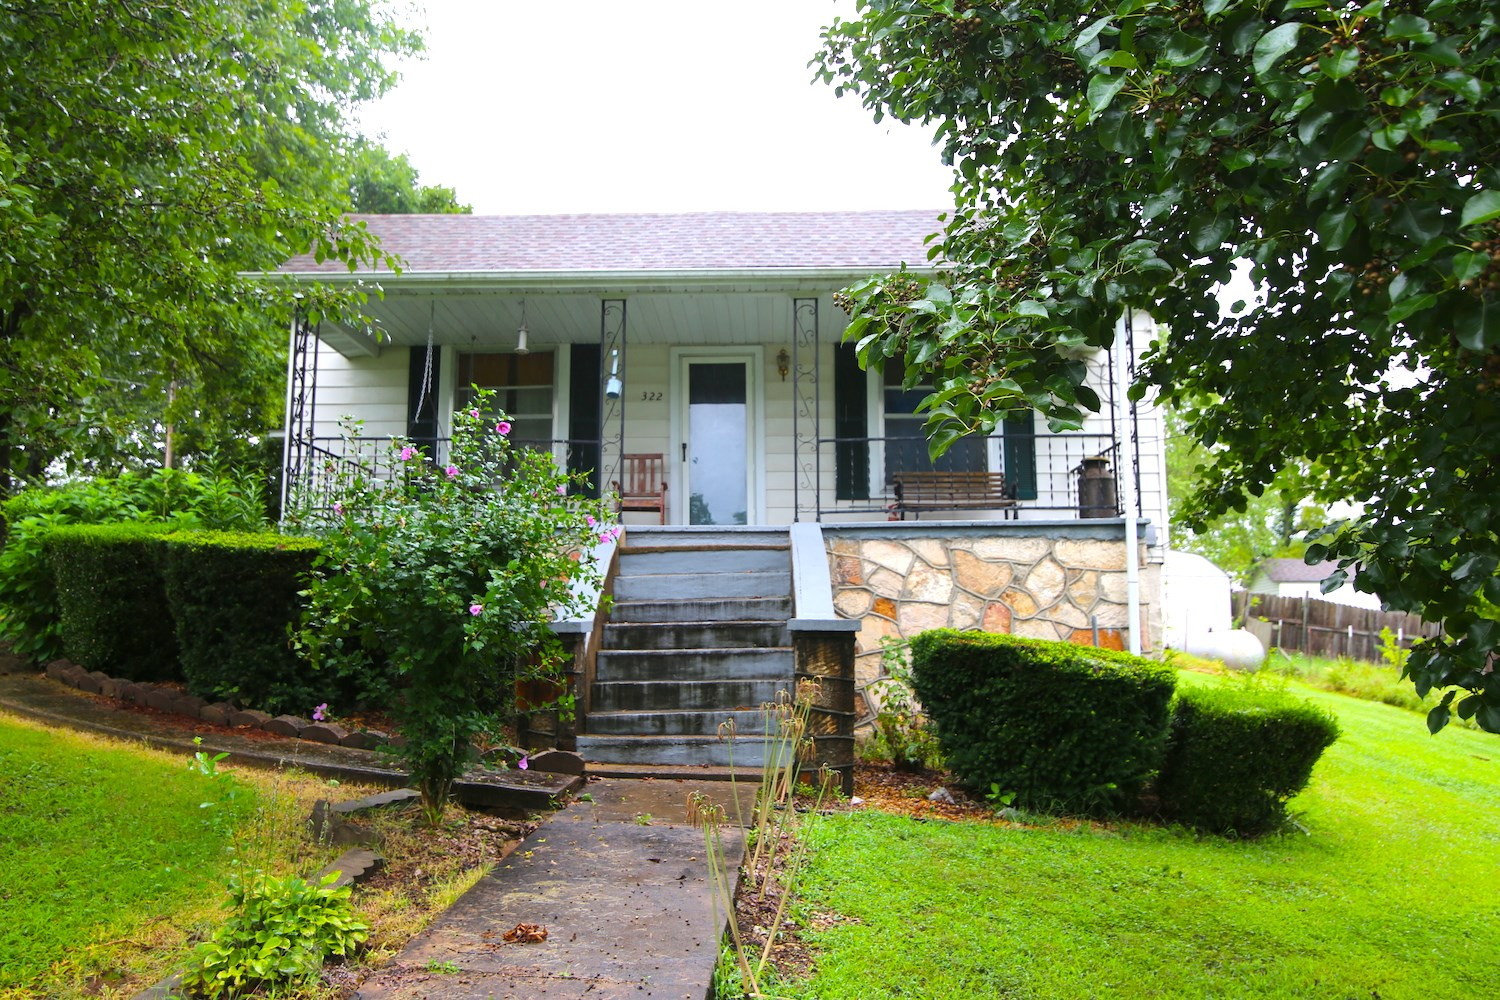 Home in Town For Sale in Thayer Missouri